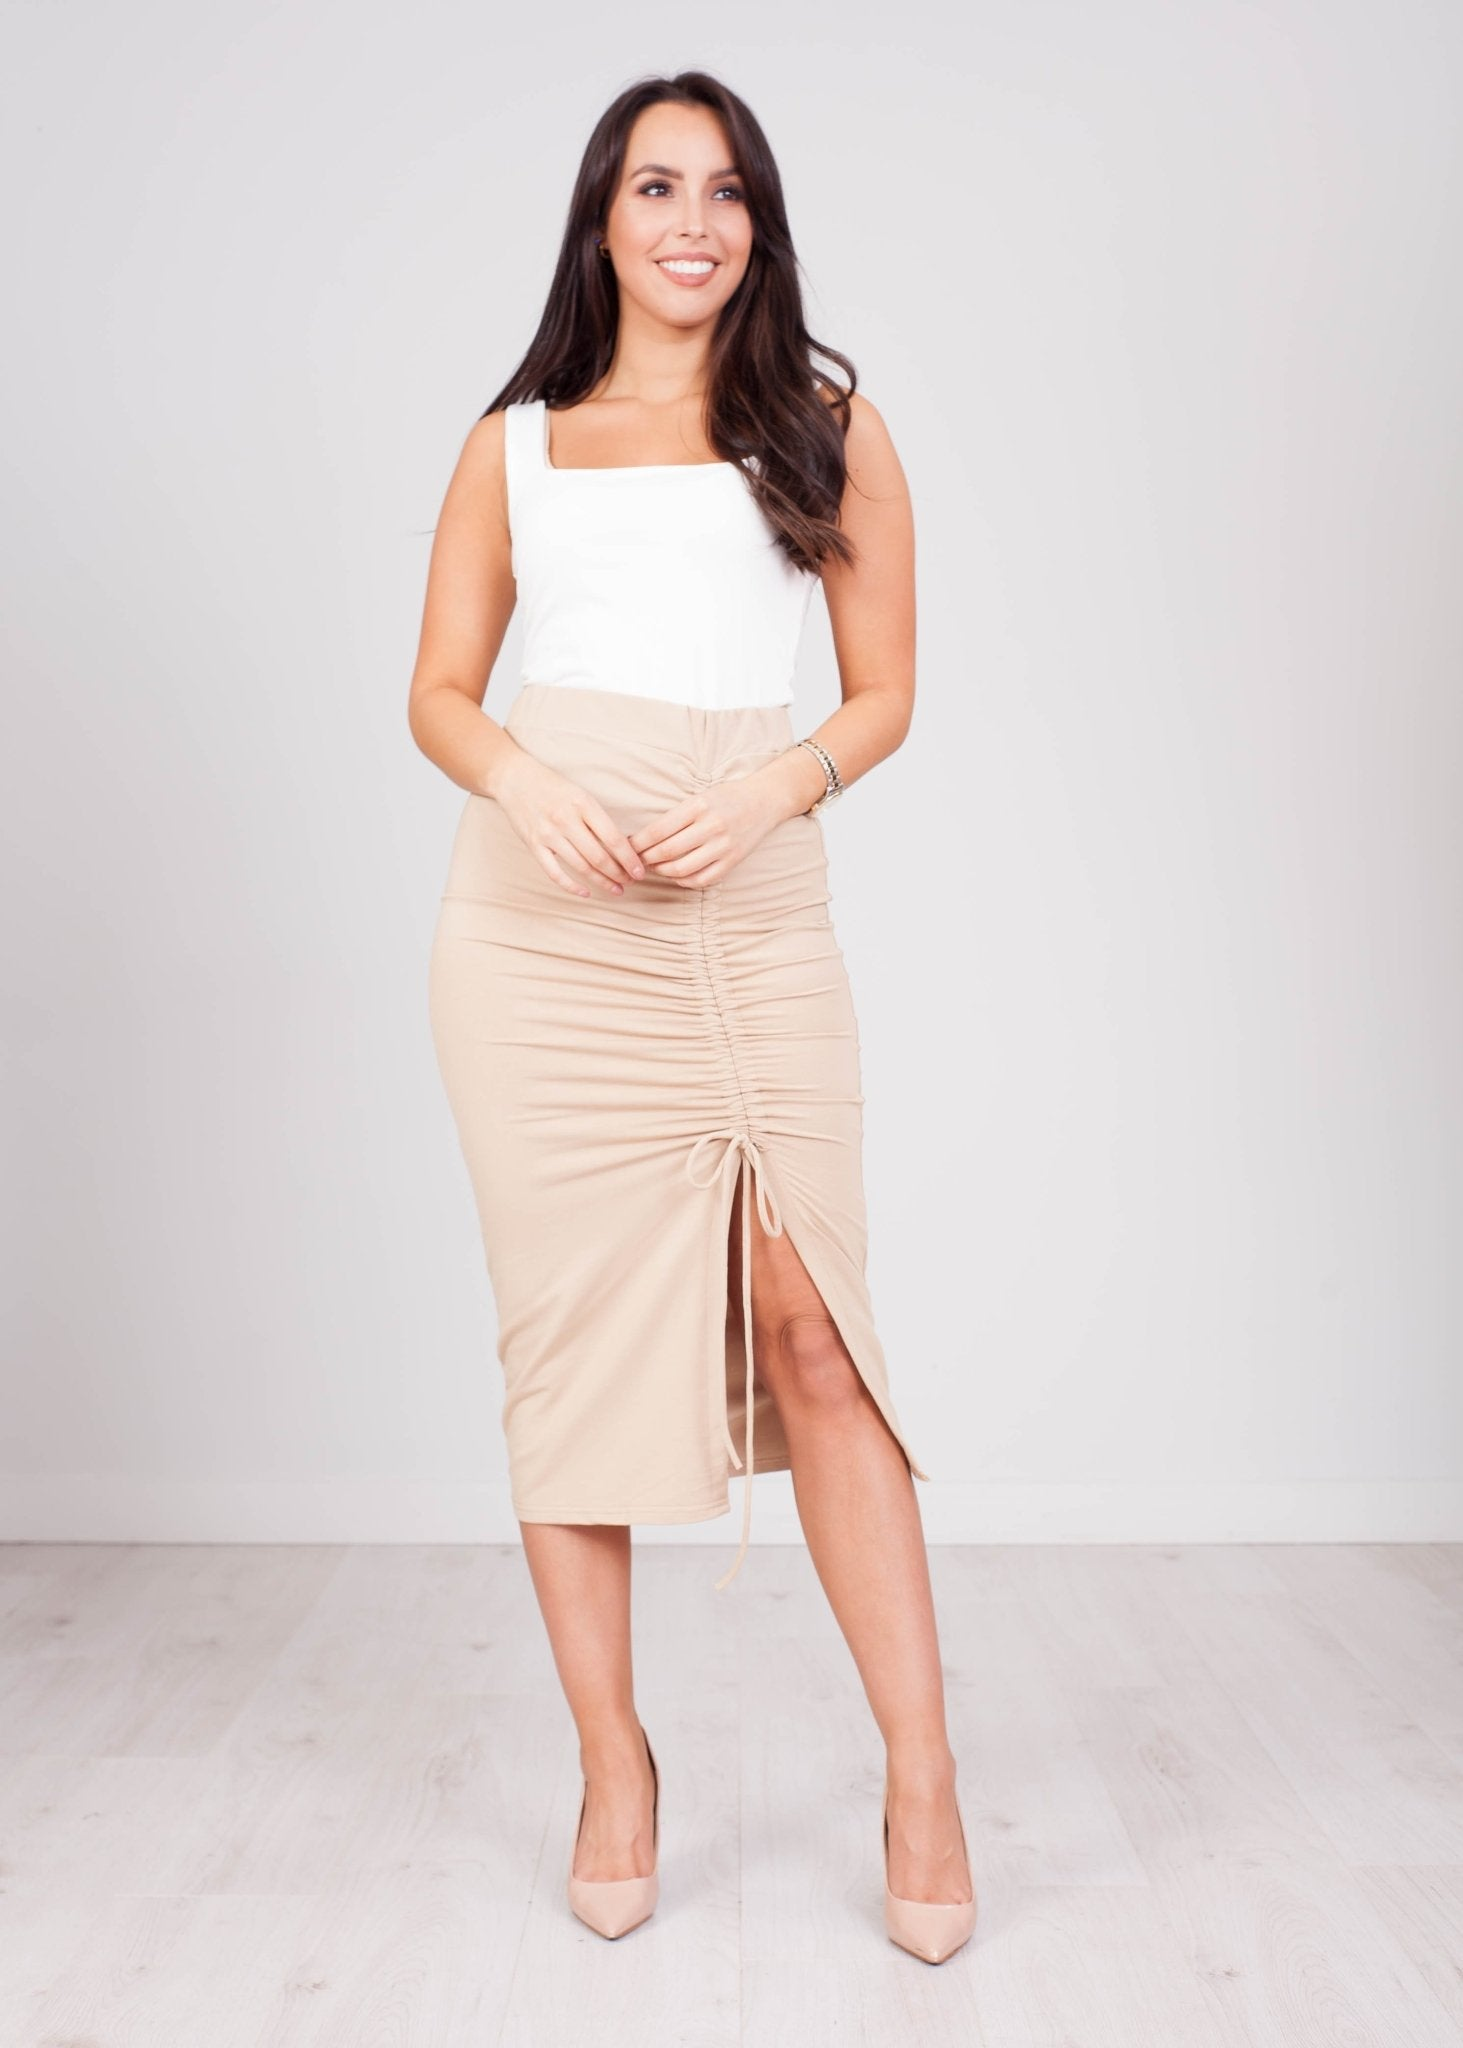 Emilia Tan Jersey Ruched Skirt - The Walk in Wardrobe